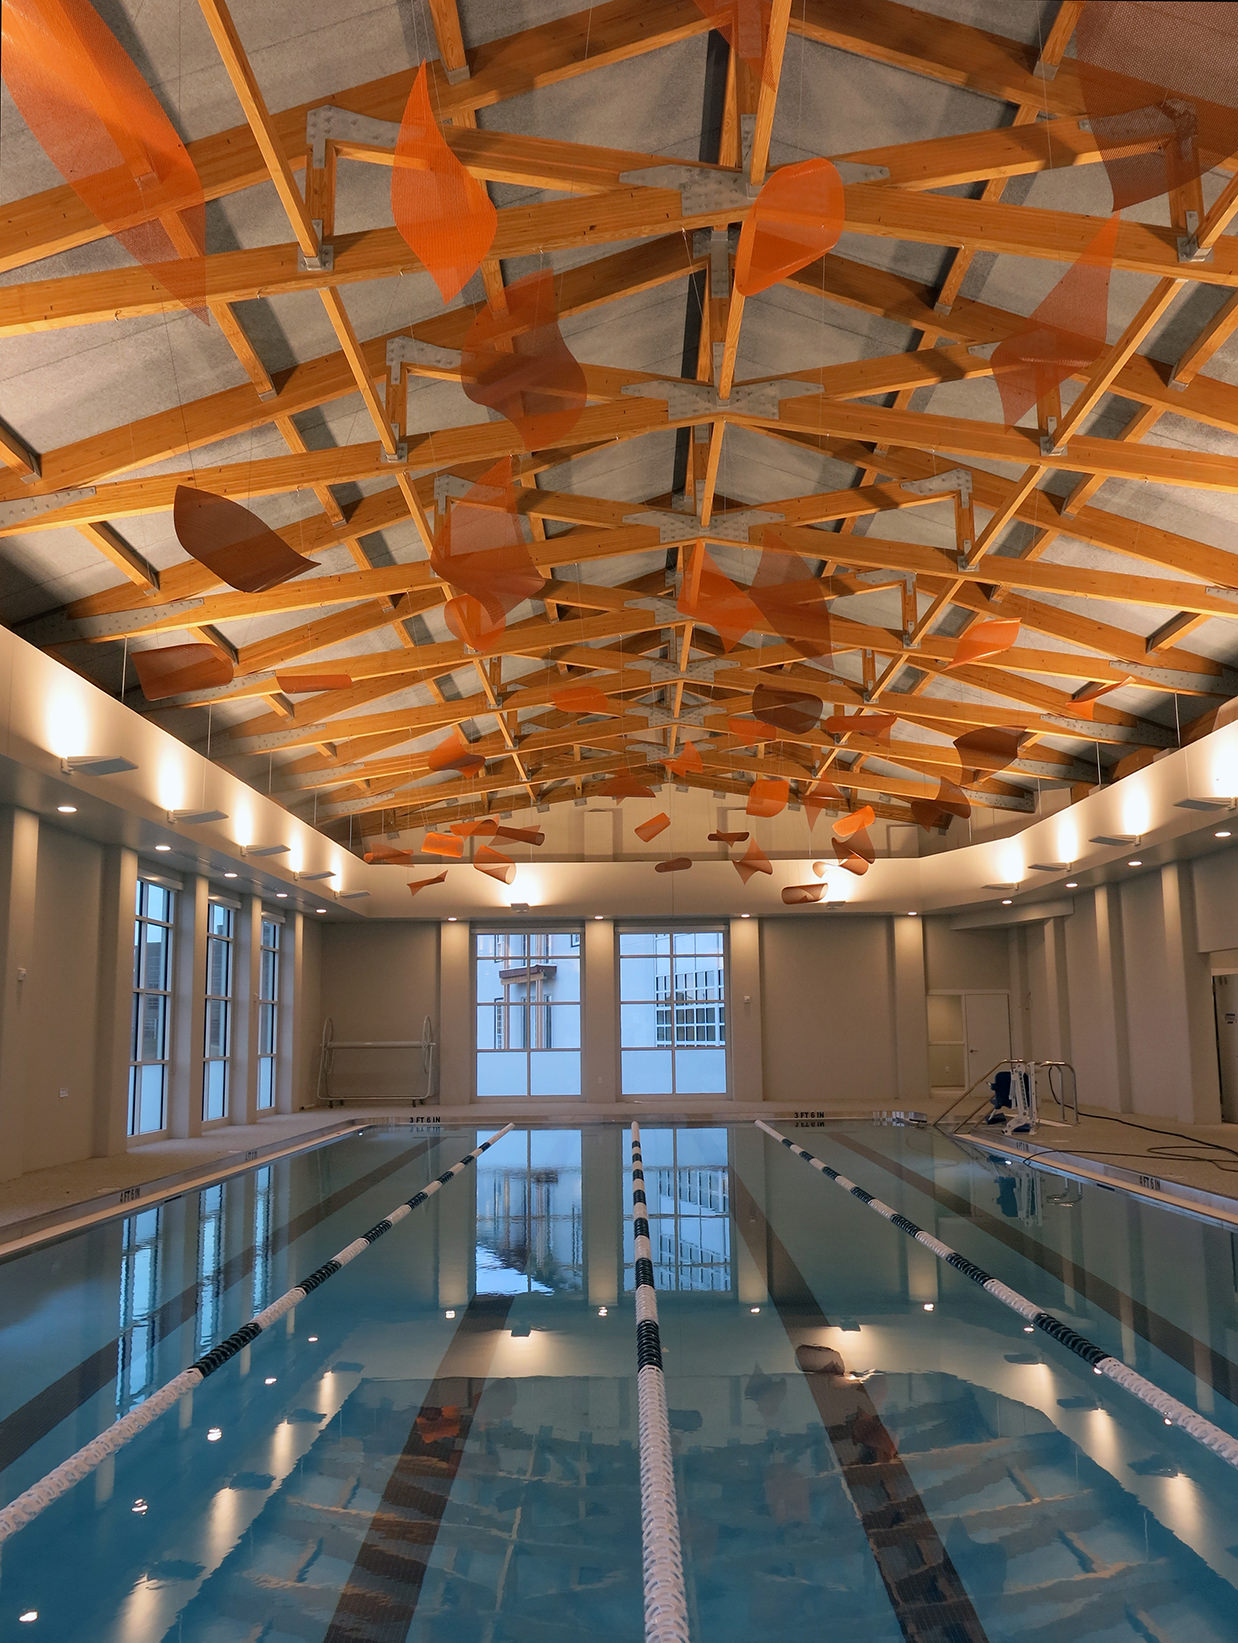 Suspended healthcare art sculpture by Talley Fisher in the indoor pool of Aurora Health and Wellness Center.